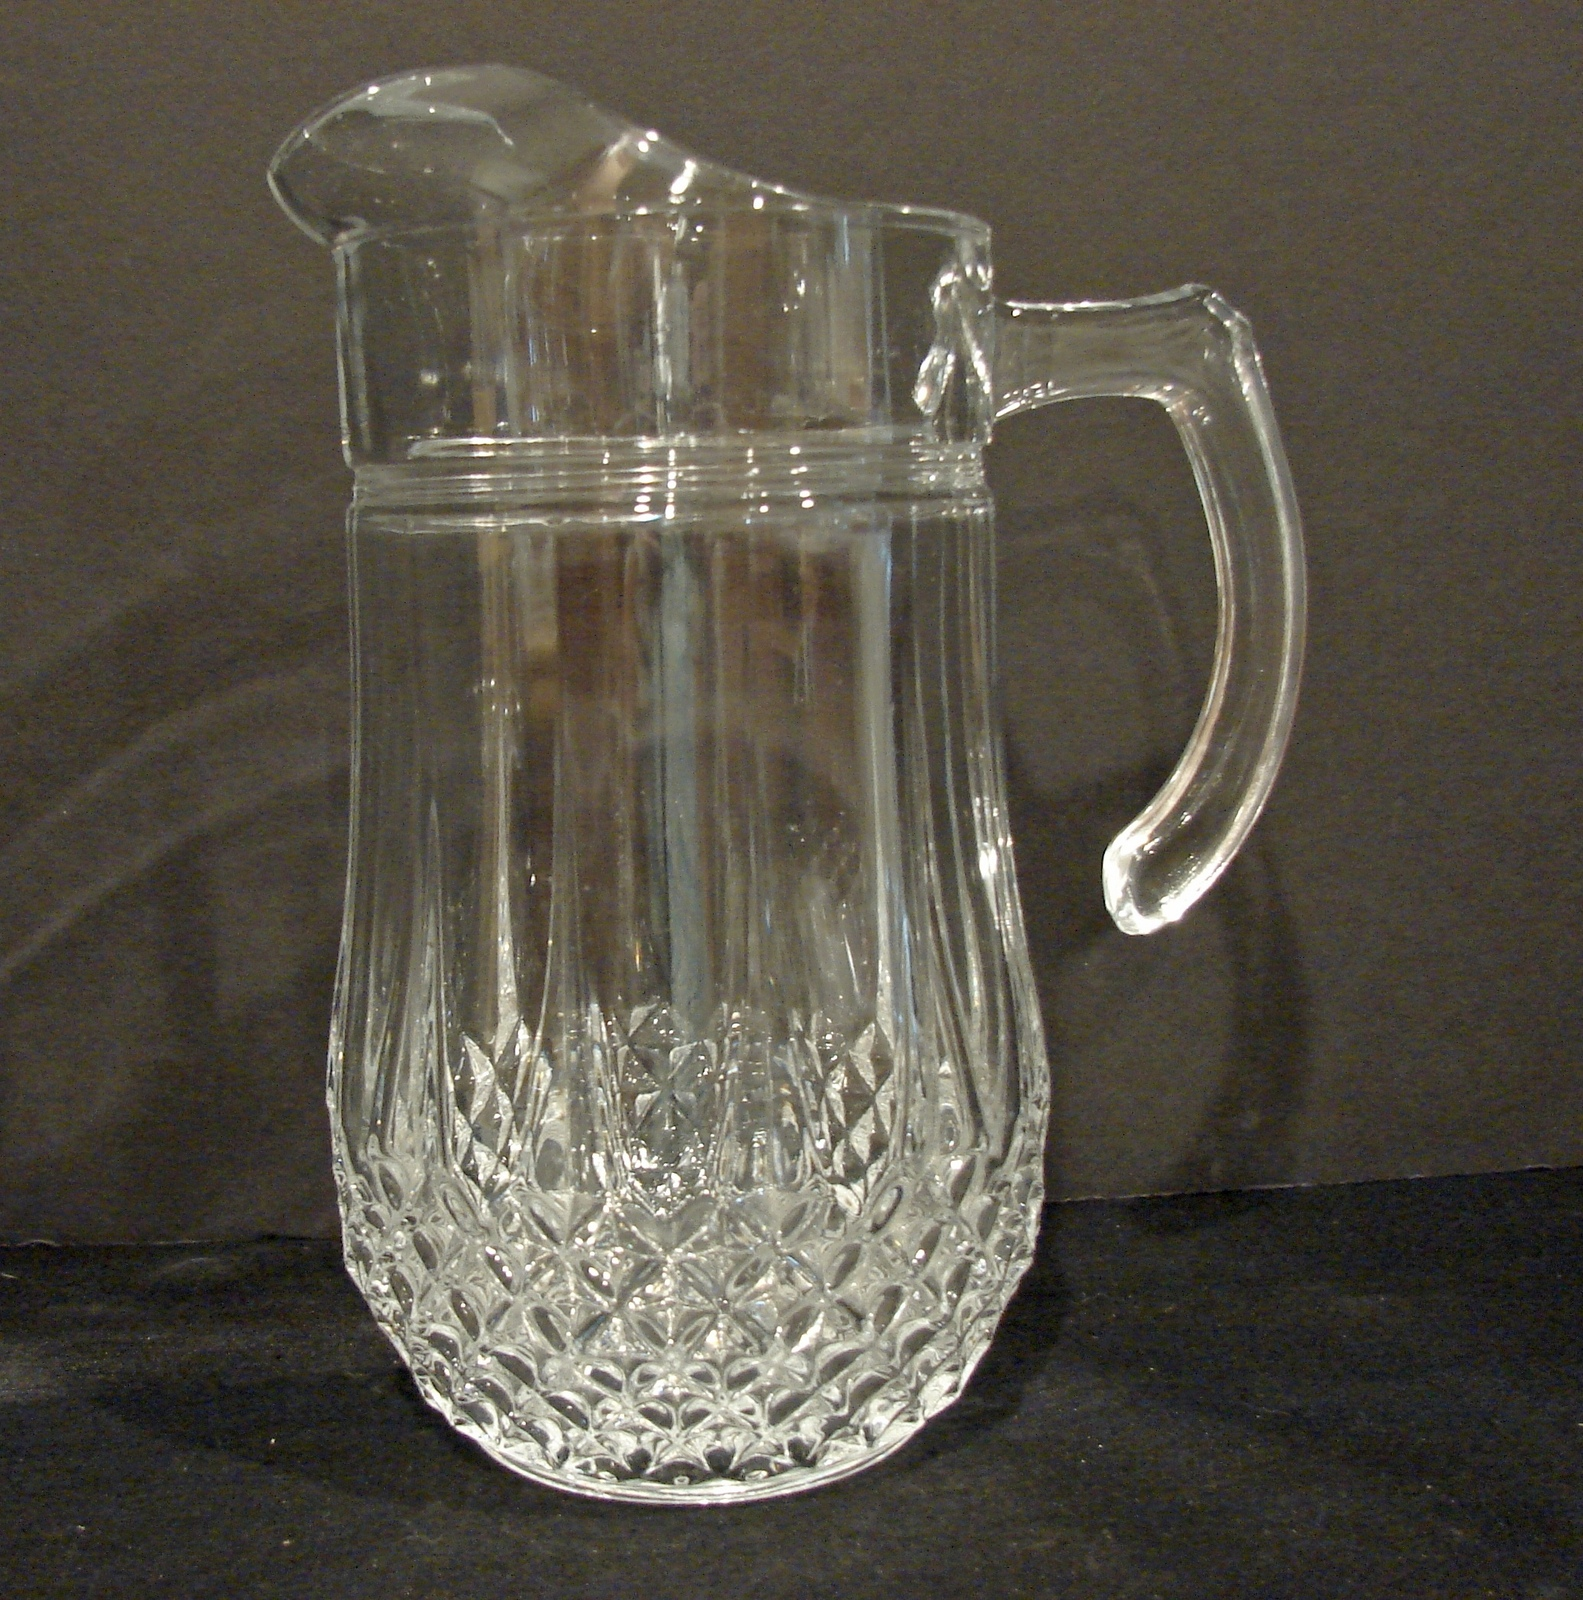 Primary image for Cristal D'Arques Longchamps Crystal Pitcher